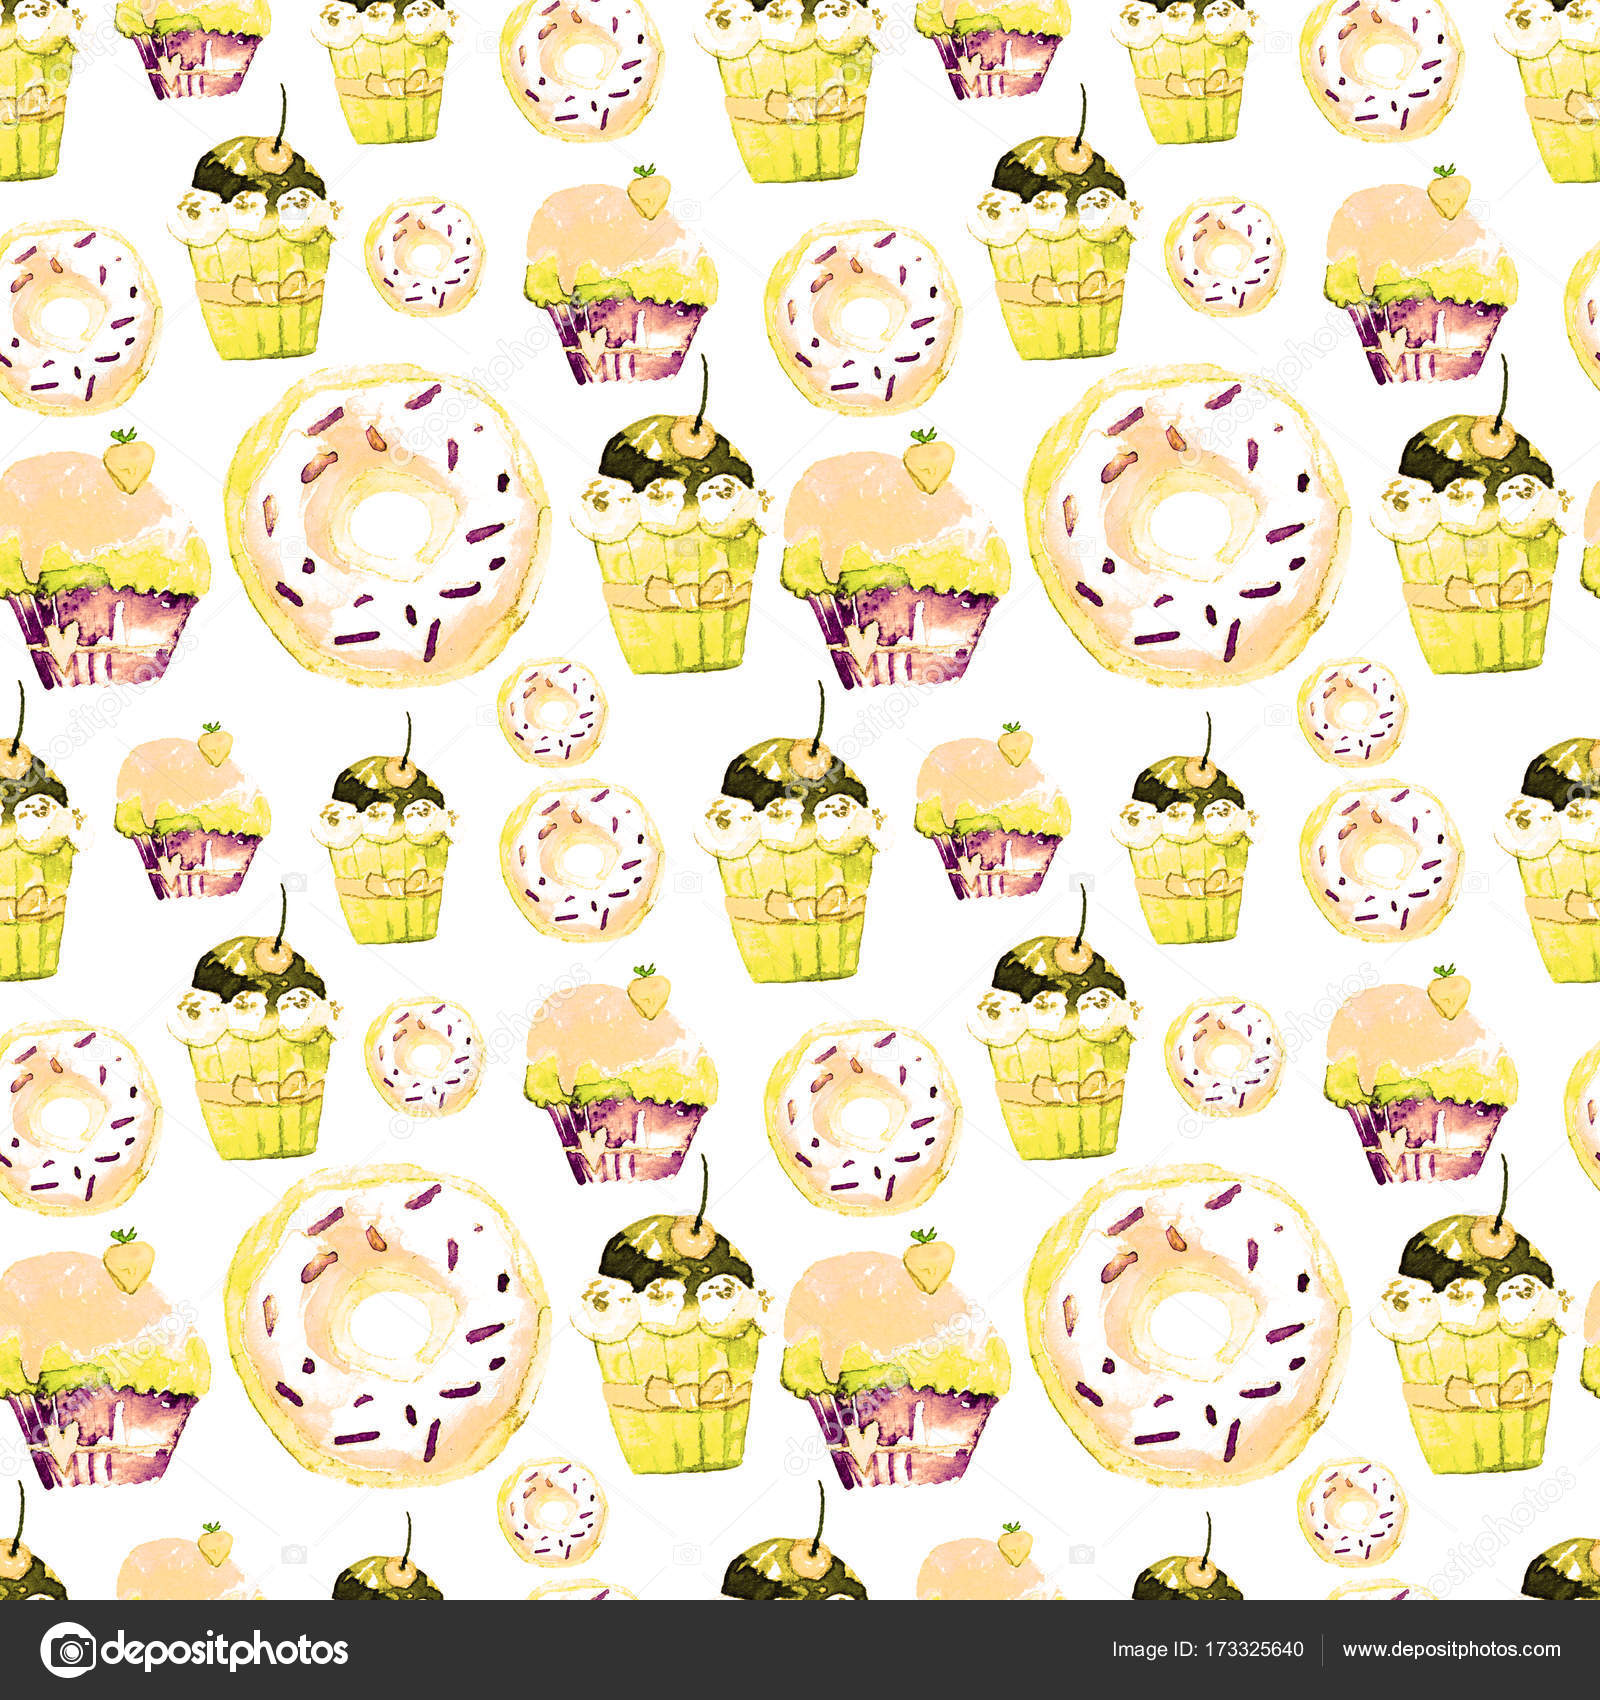 Melting Ice Cream Simple Wallpaper Designs: Sweet Seamless Pattern With Cakes, Donuts And Ice-cream